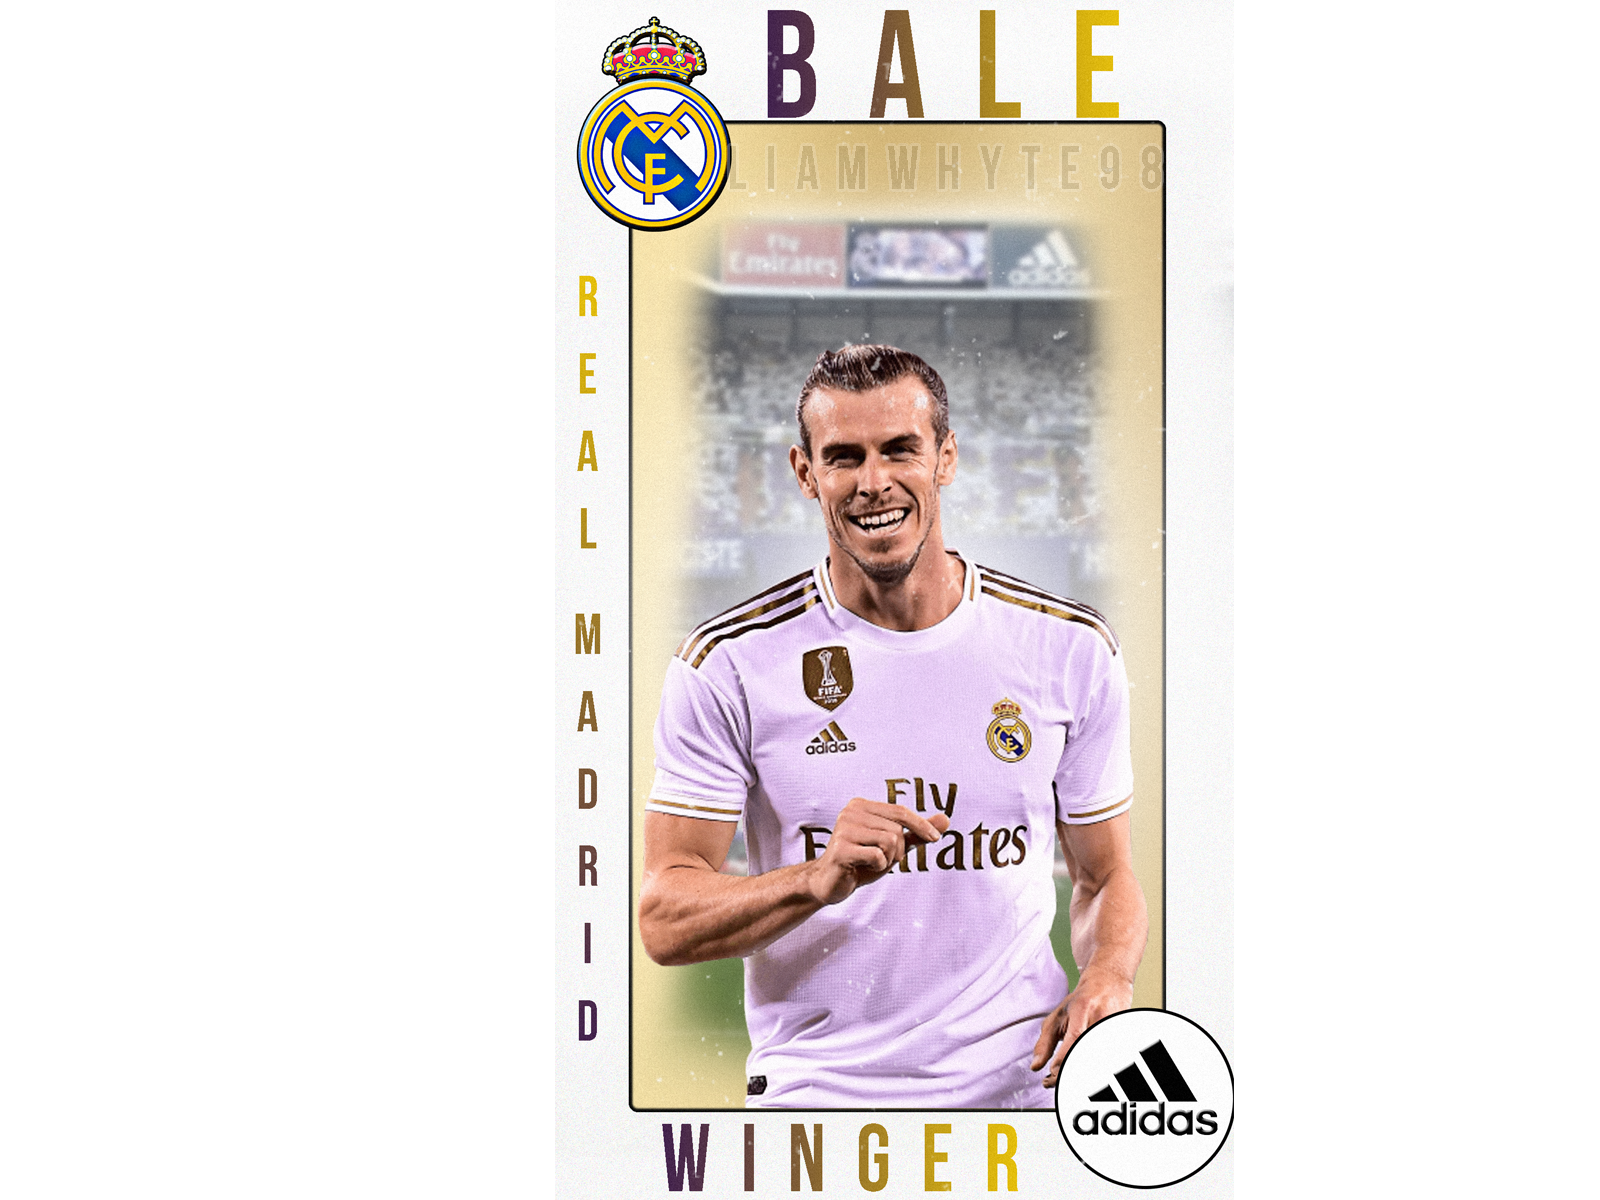 Gareth Bale Real Madrid Player Card Profile Trading Card By Liam Whyte On Dribbble